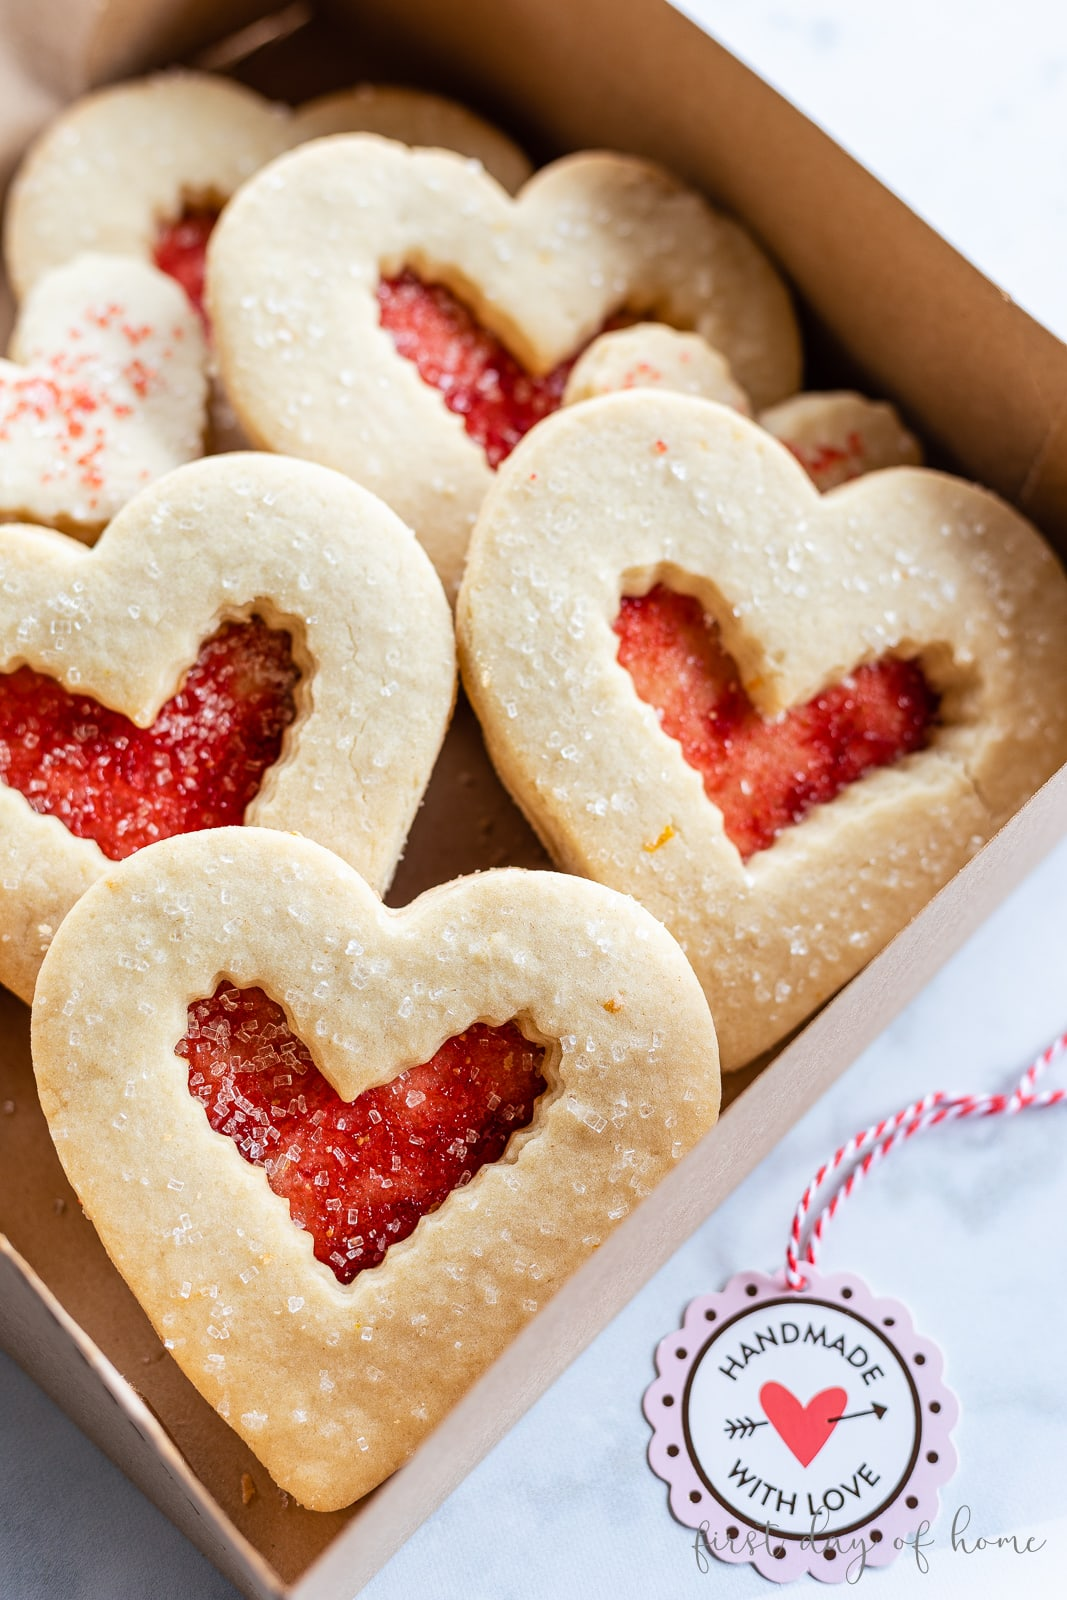 Heart shaped Valentine's Day sugar cookies with red jelly filling